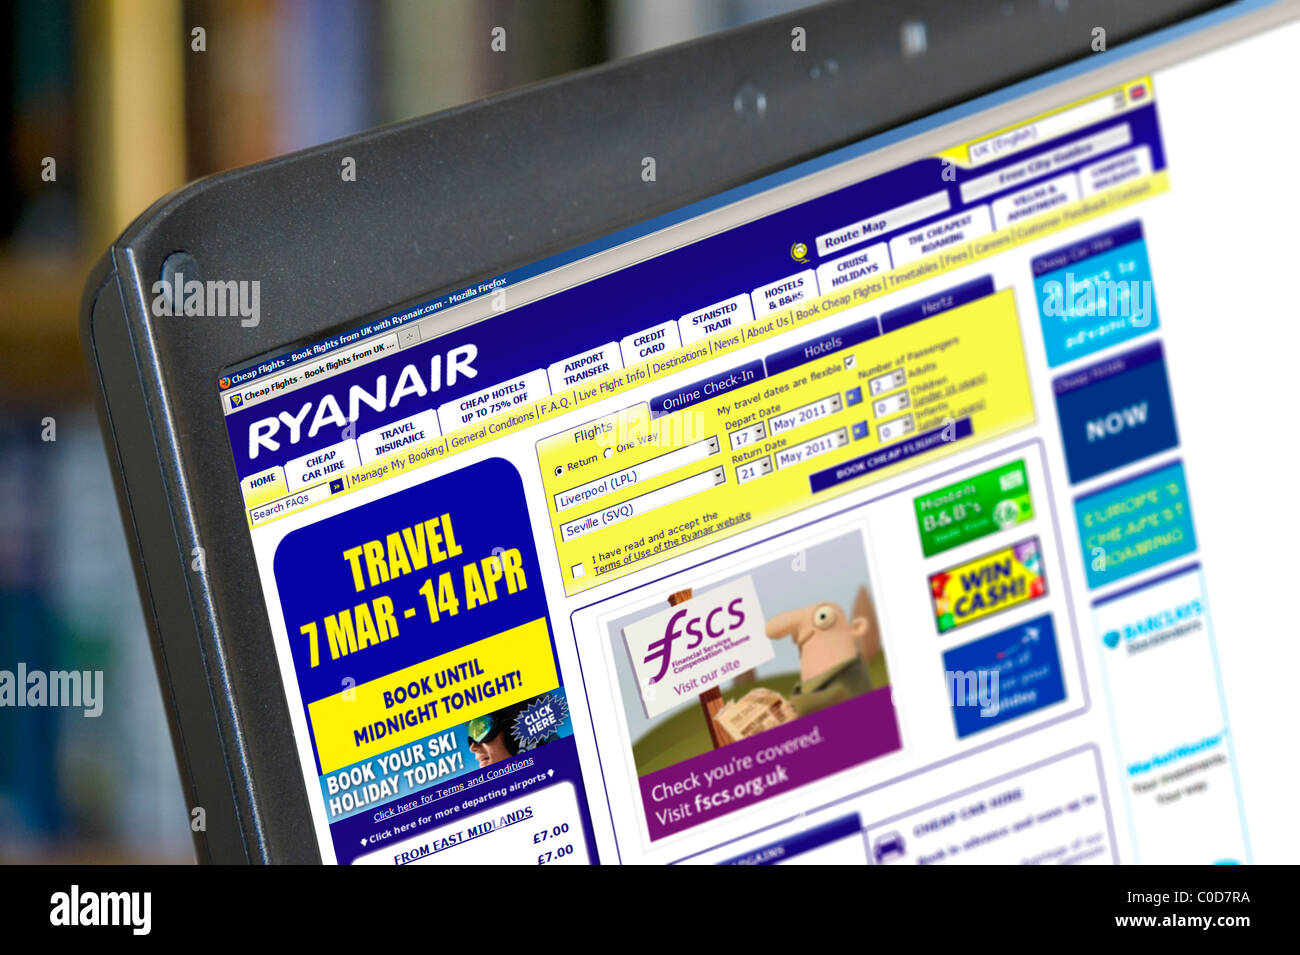 Booking A Flight Stock Photos Images Alamy Ory Electric Plane On The Ryanair Site Laptop Computer Uk Image